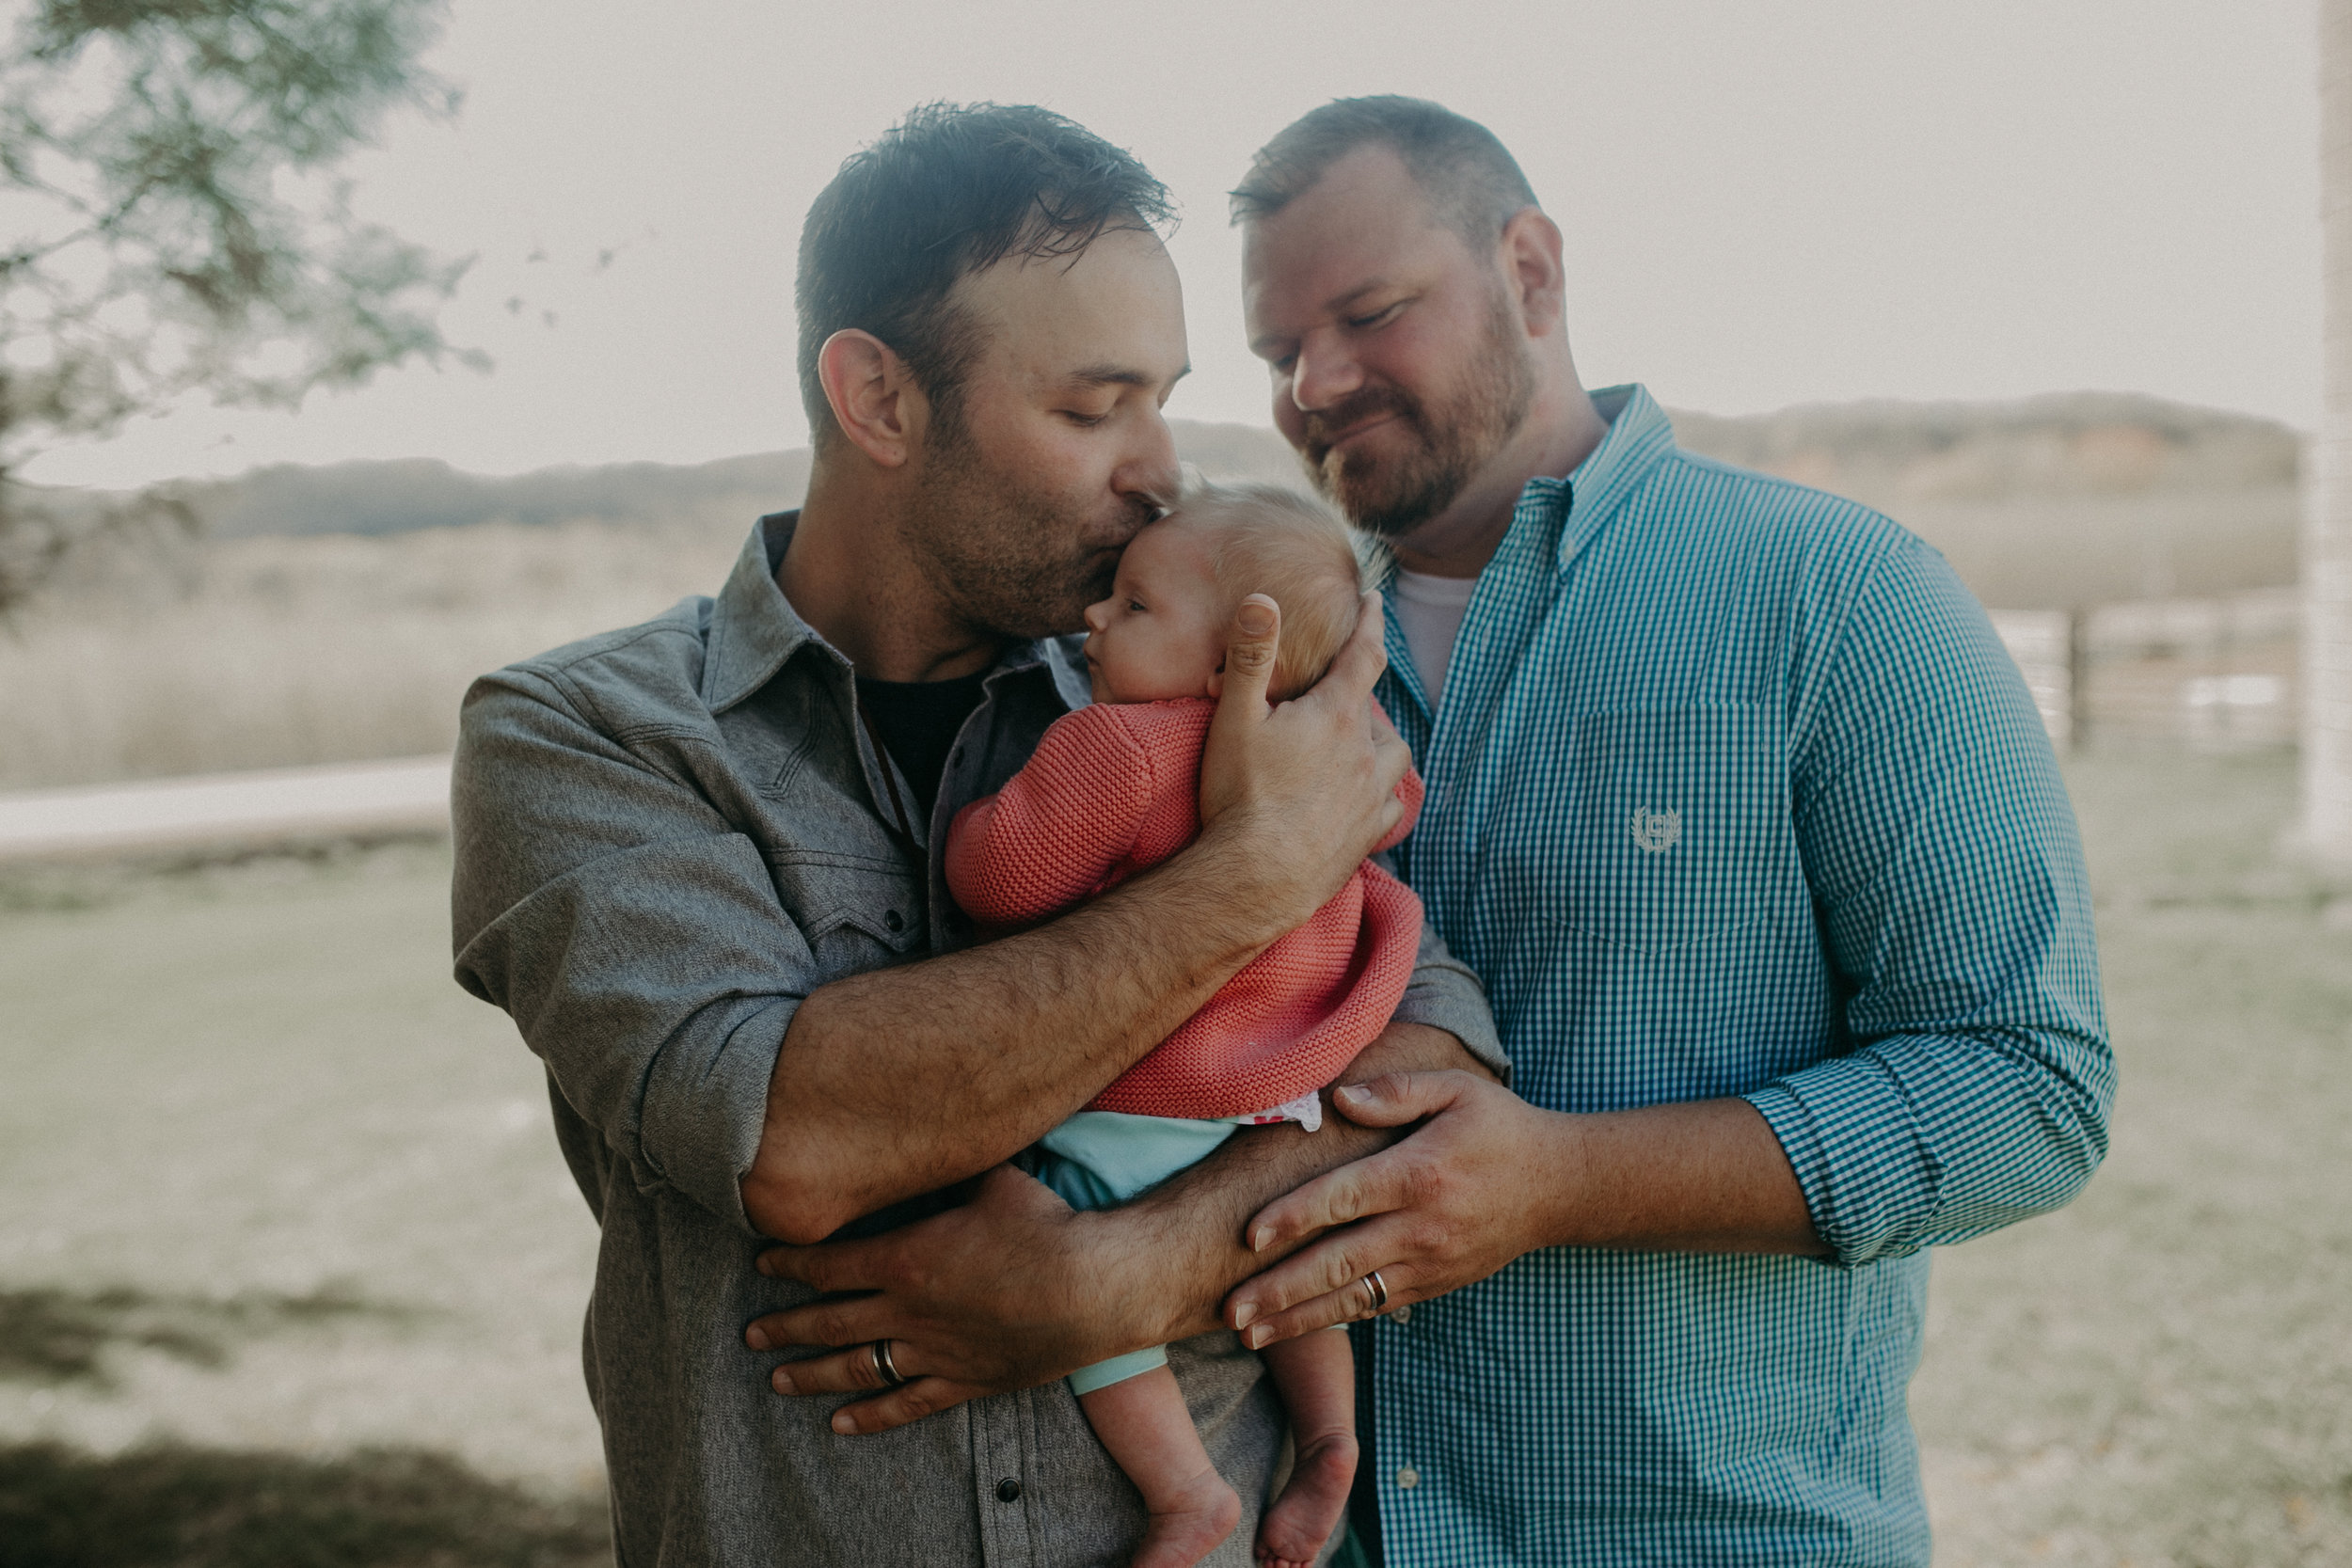 River Falls WI family photographer is gay-friendly and supporter of LGBTQ  clients